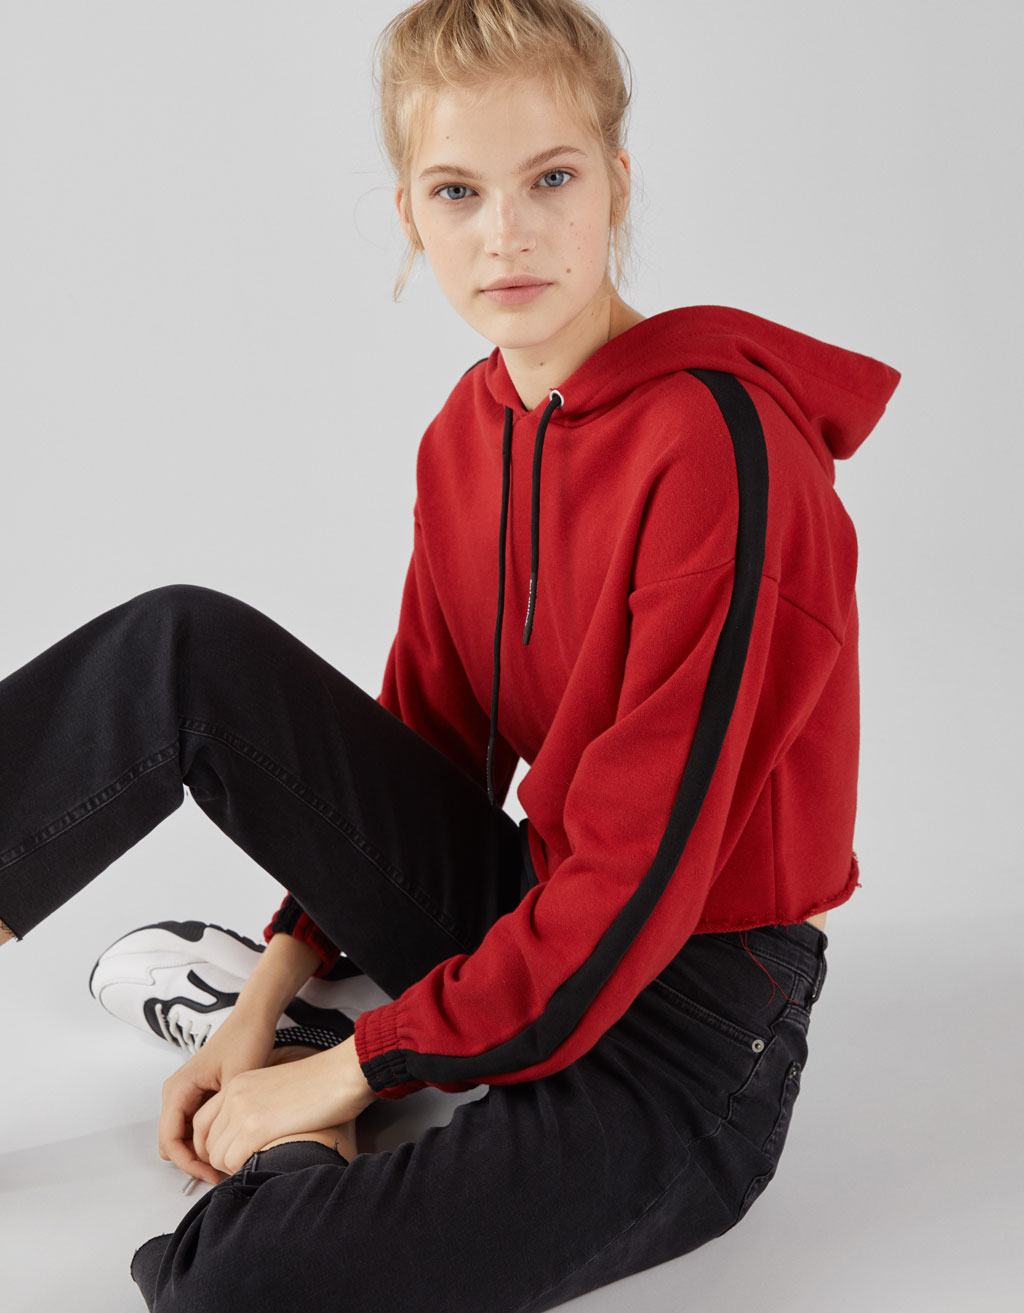 Sweatshirt with side stripes